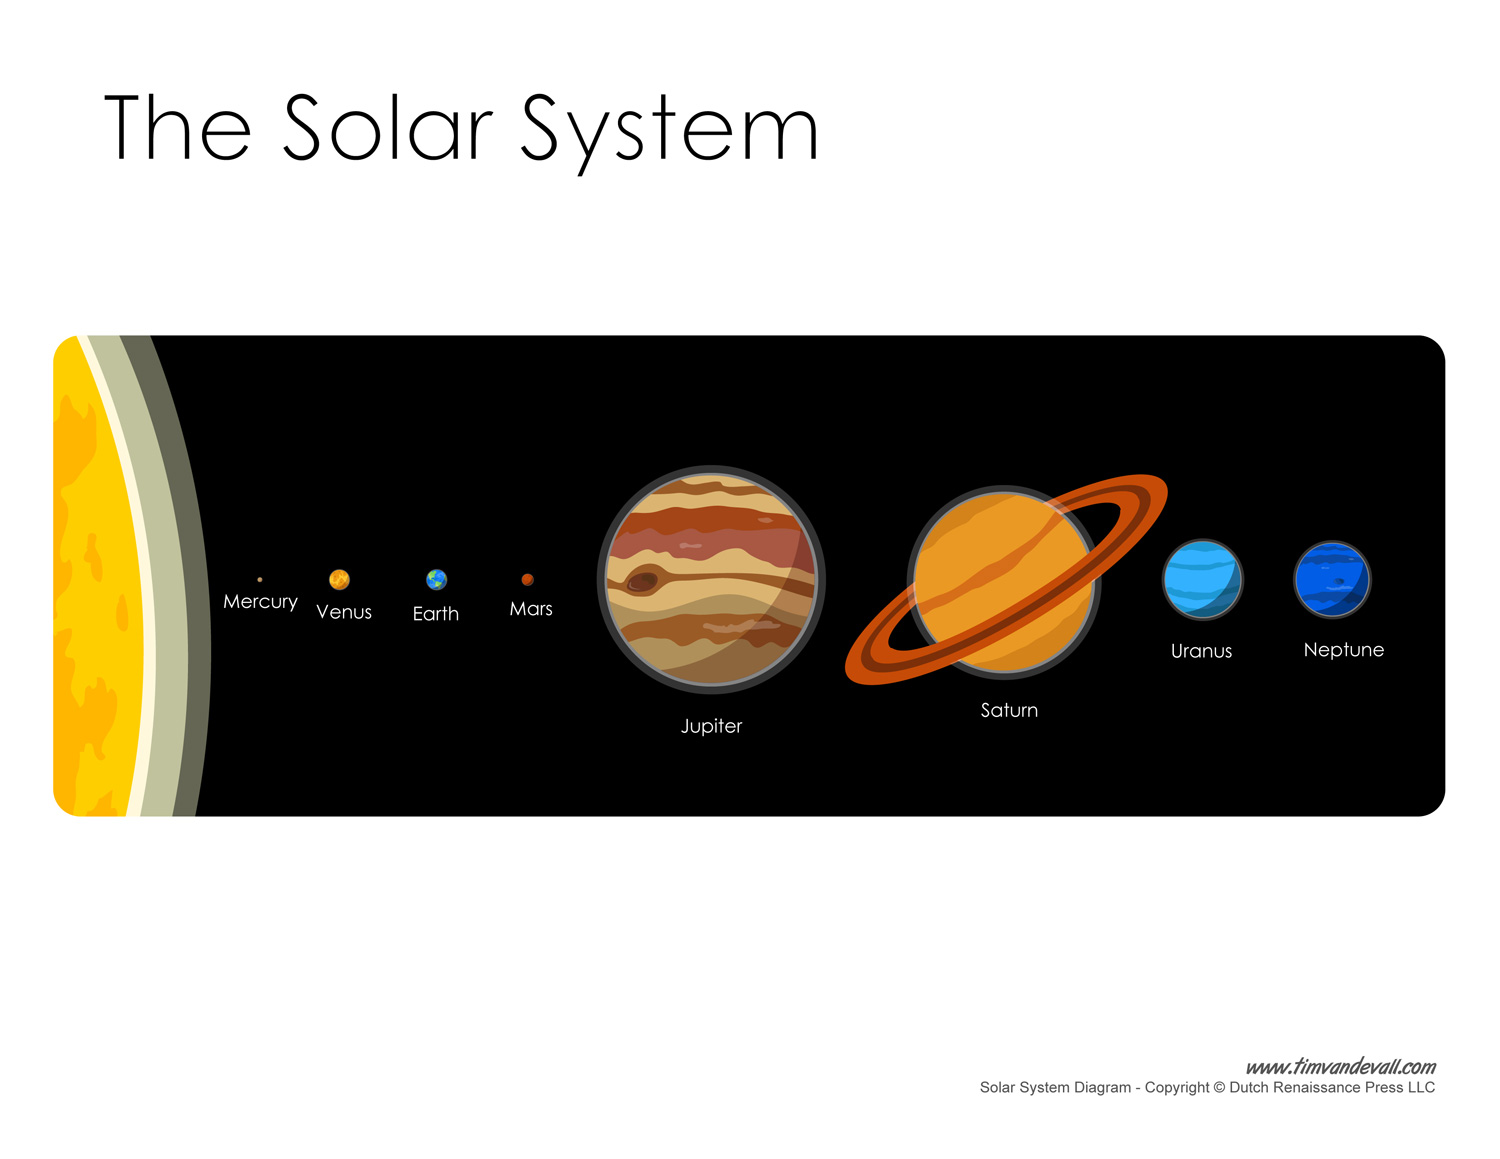 Solar system diagram learn the planets in our solar system solar system diagram ccuart Gallery